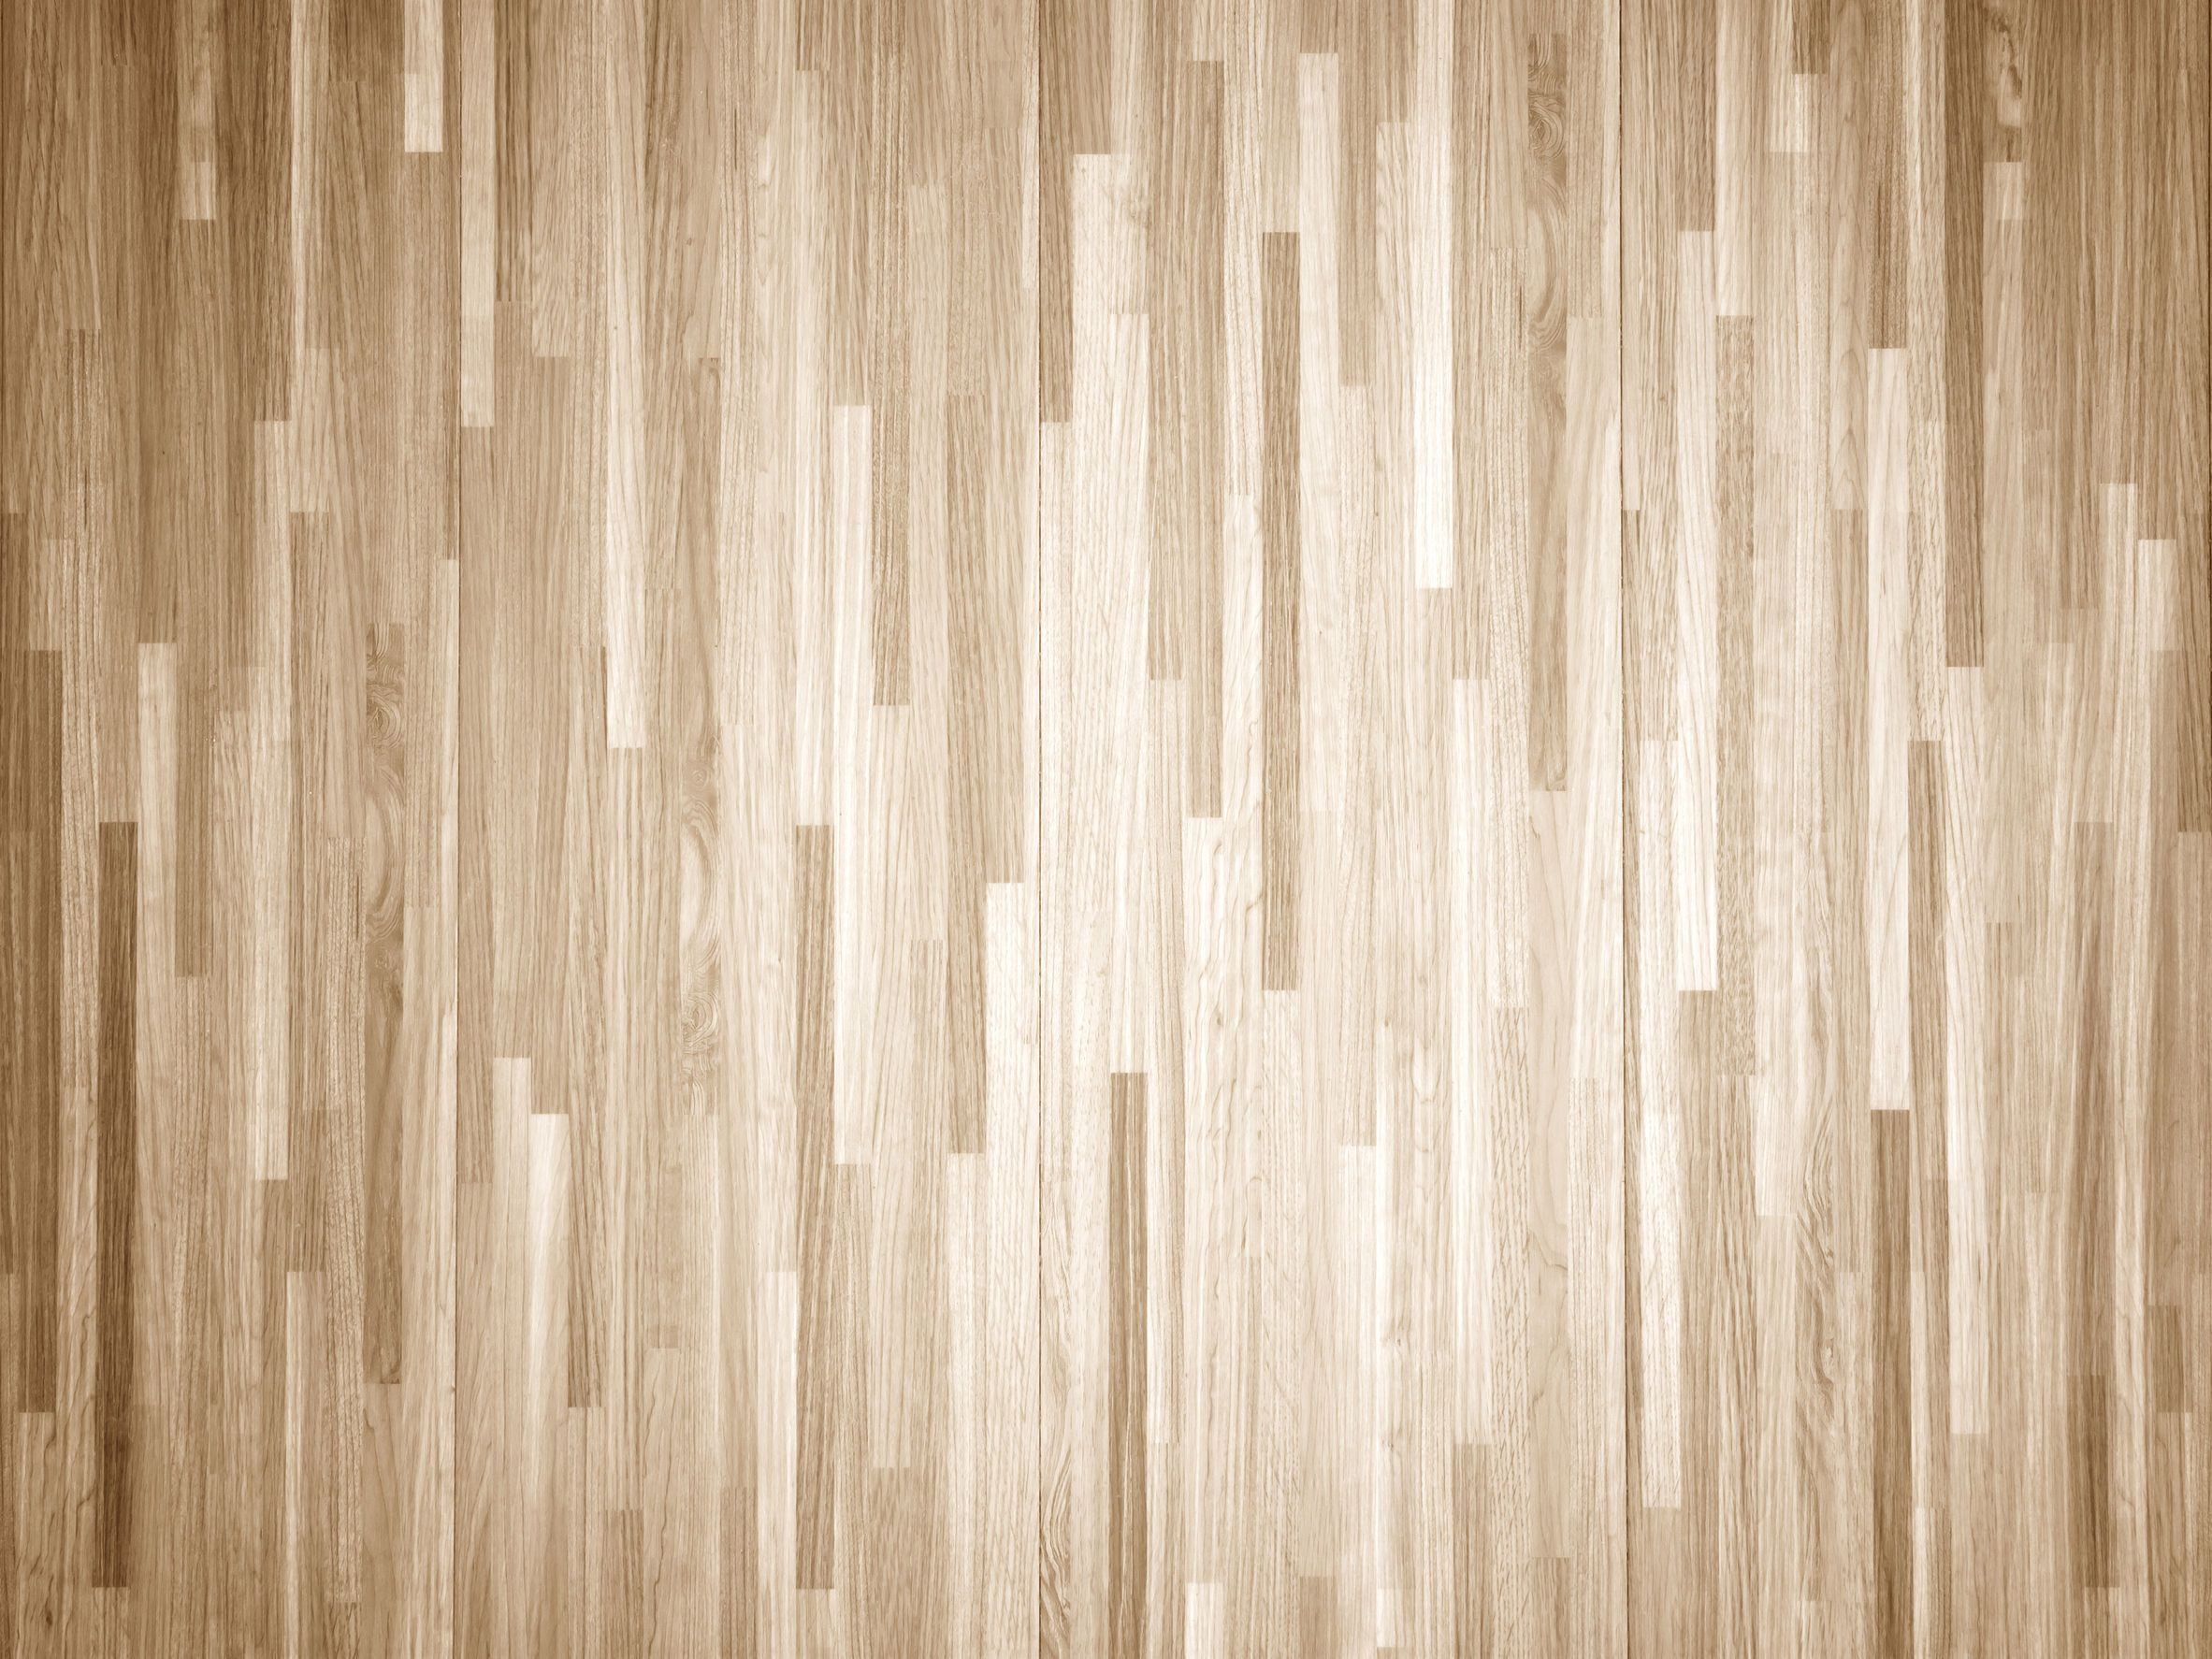 engineered hardwood flooring reviews 2017 of how to chemically strip wood floors woodfloordoctor com with you